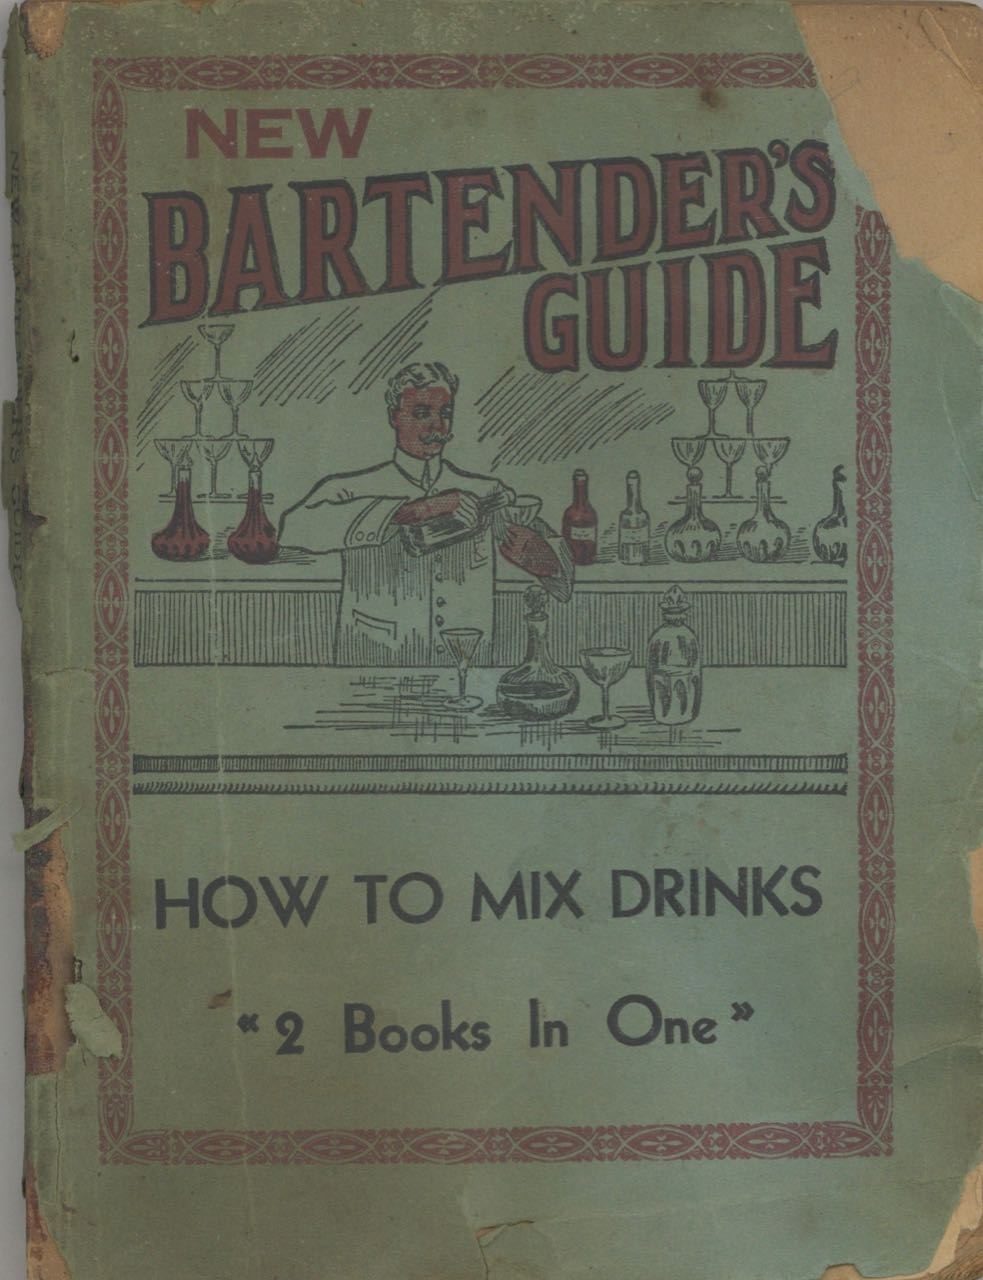 New Bartender's Guide. Telling How To Mix All The Standard and Popular Drinks Called For Everyday.[with] The Up-to-date Bartender's Guide, a Valuable Ready Reference Guide to the Art of Mixing Drinks, Containing all the Standard and Popular Drinks, with a Choice Selection of Appropriate Toasts. Charles S. Mahoney, Harry Monatague.